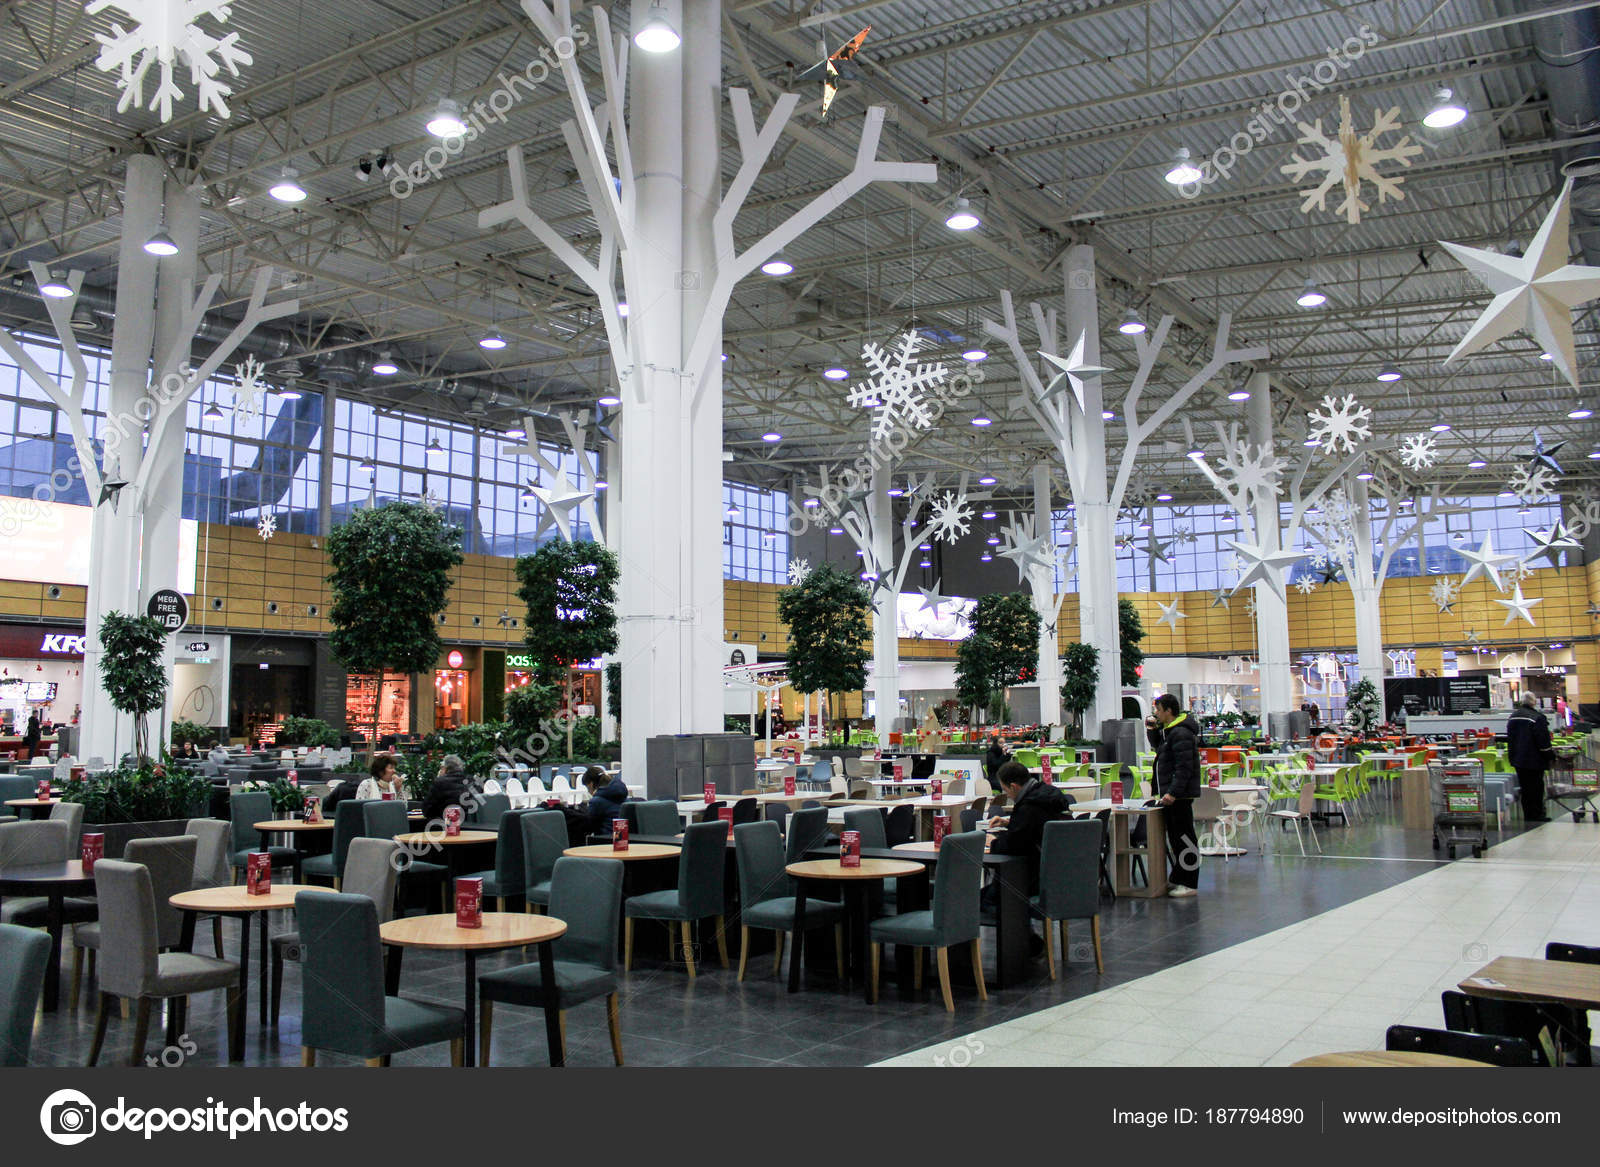 New Year S Decoration Of The Cafe Area Stock Editorial Photo C Nikey 187794890